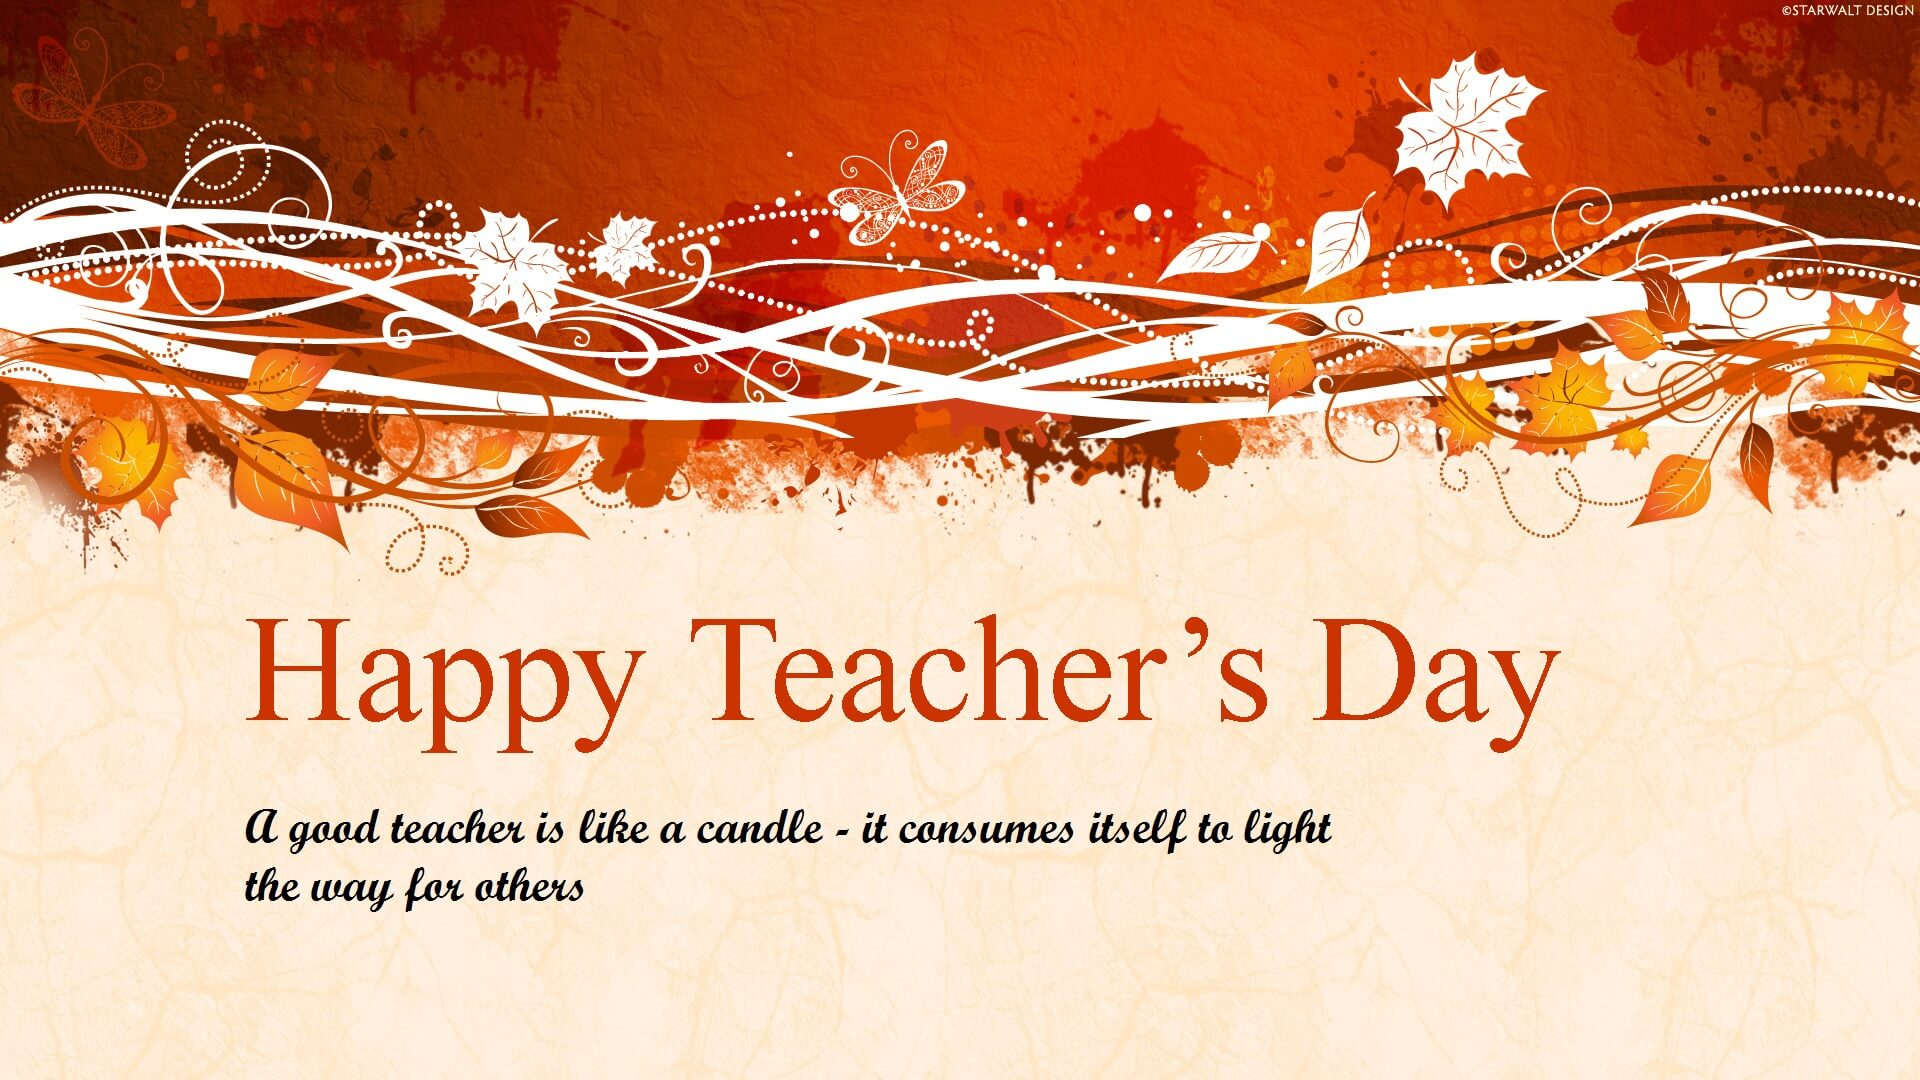 happy teachers day wishes hd wallpaper